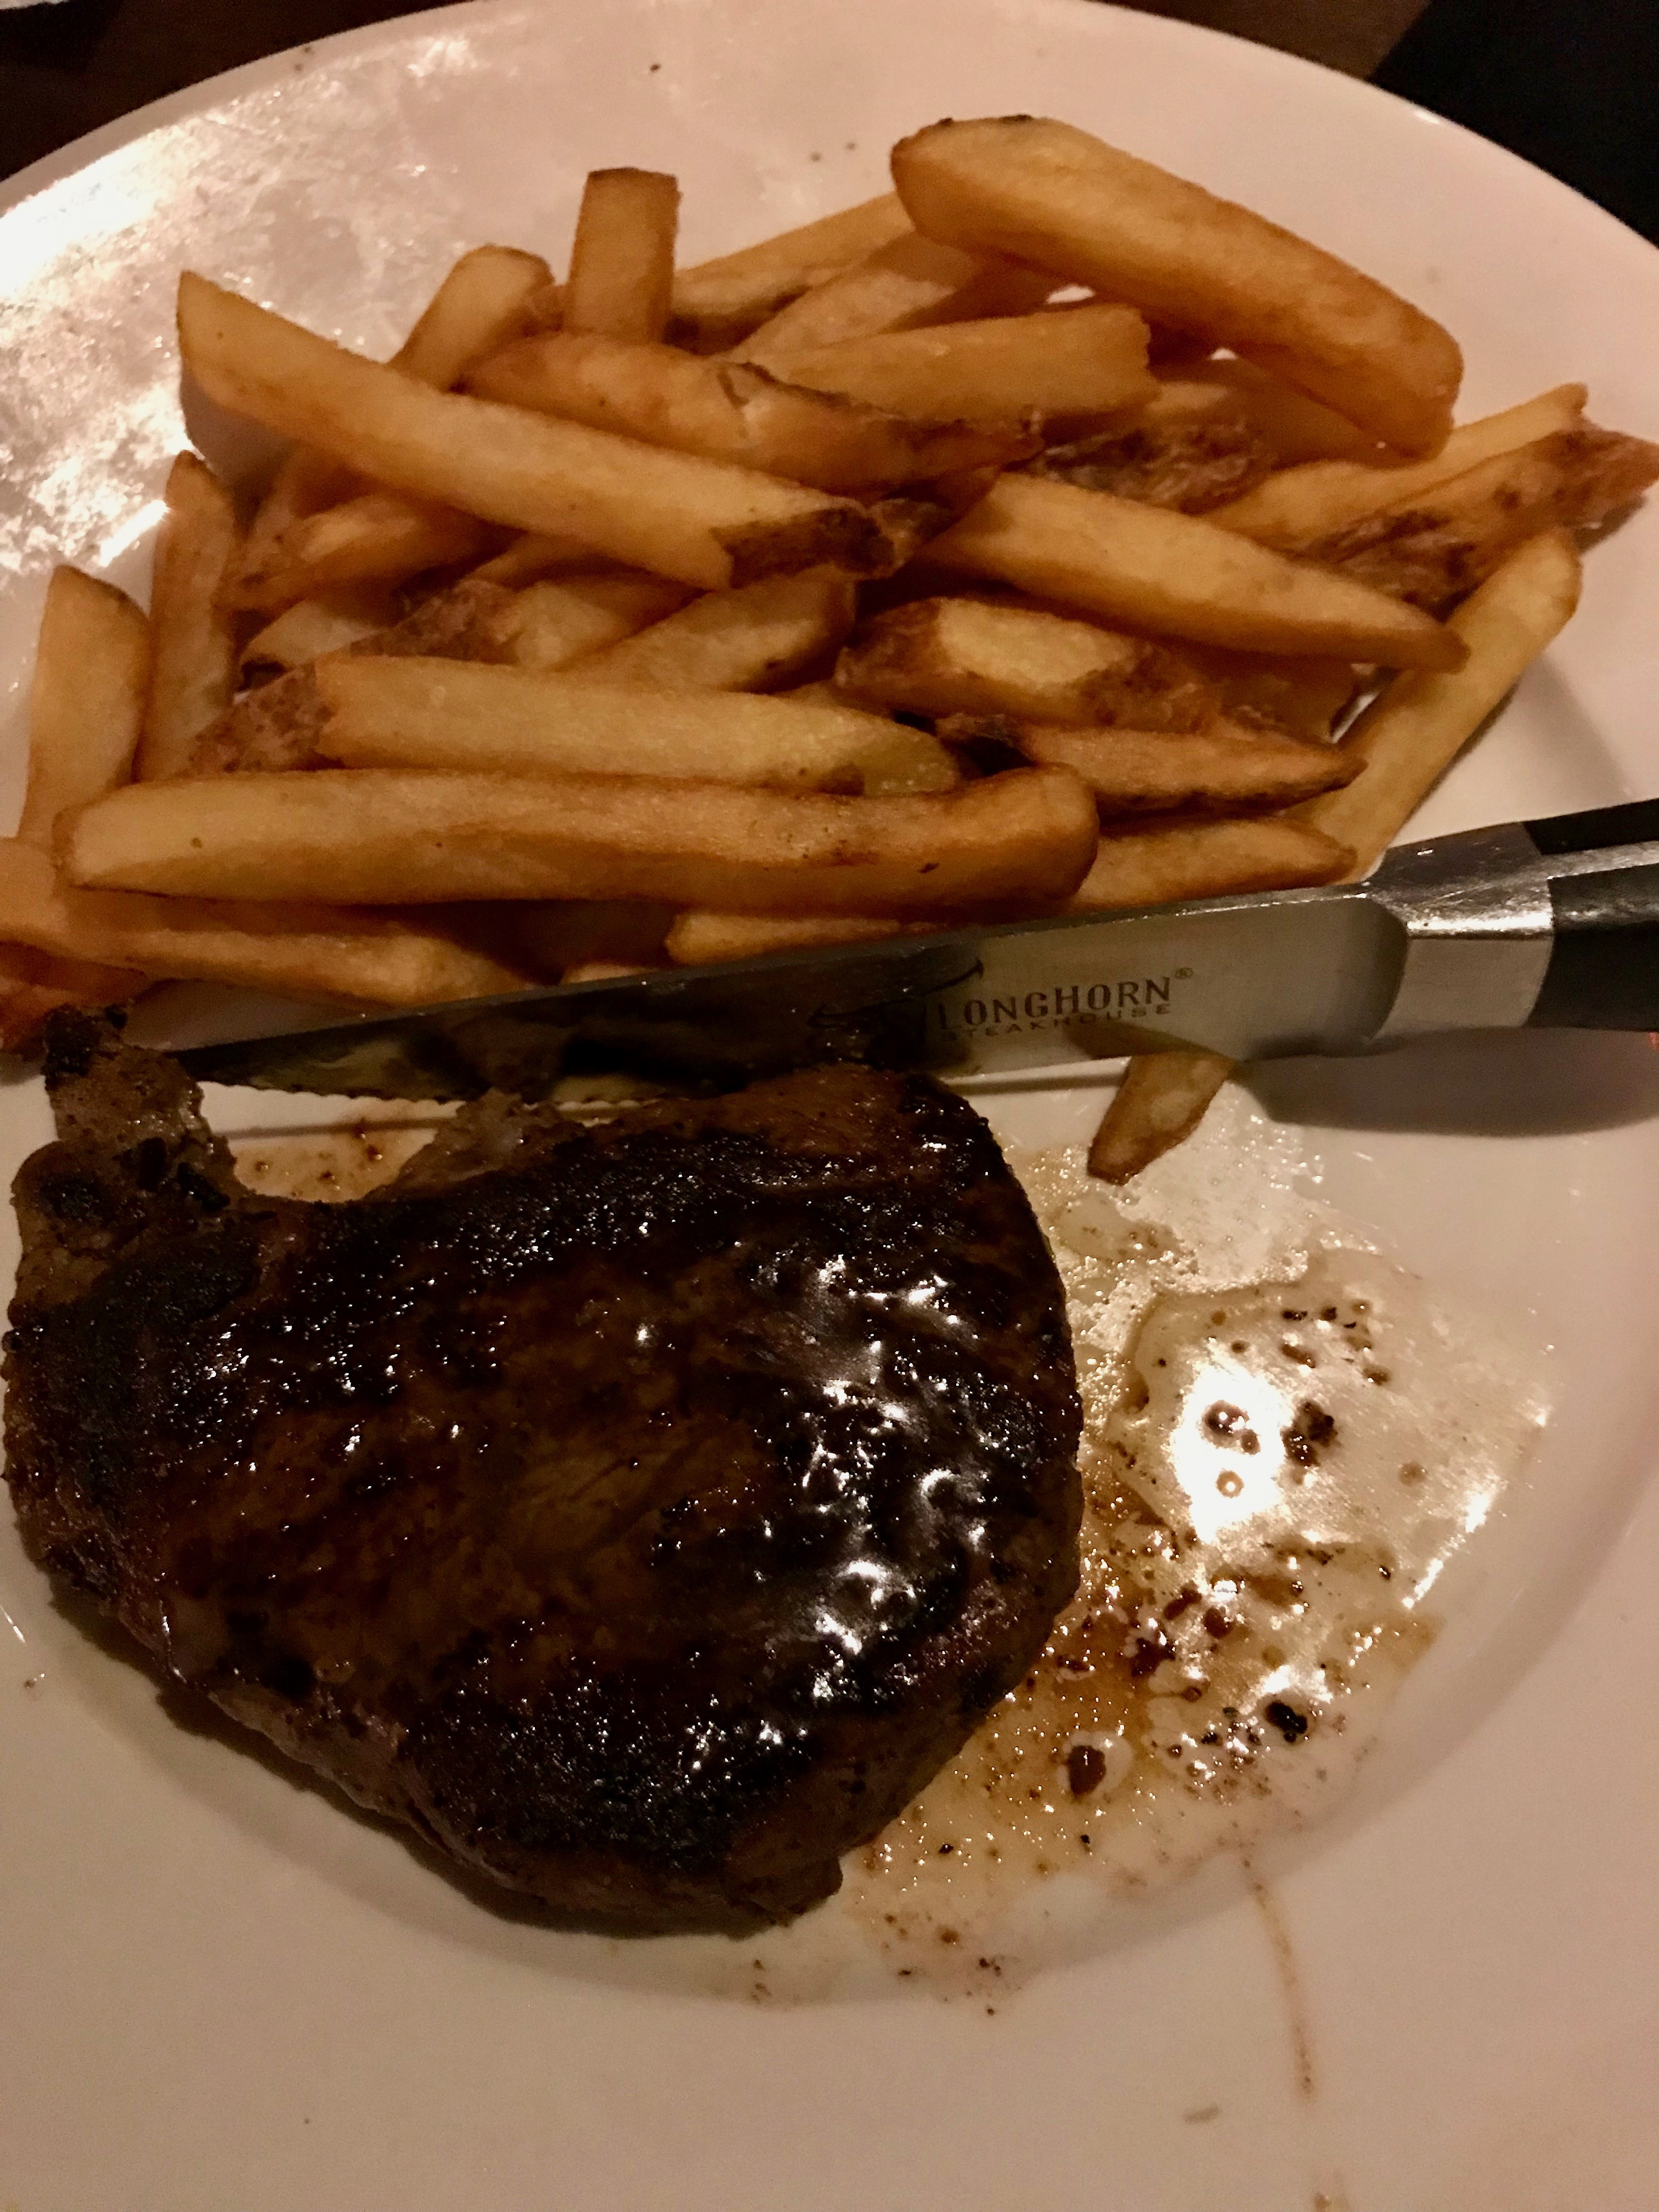 LongHorn 6 oz. Renegade Steak